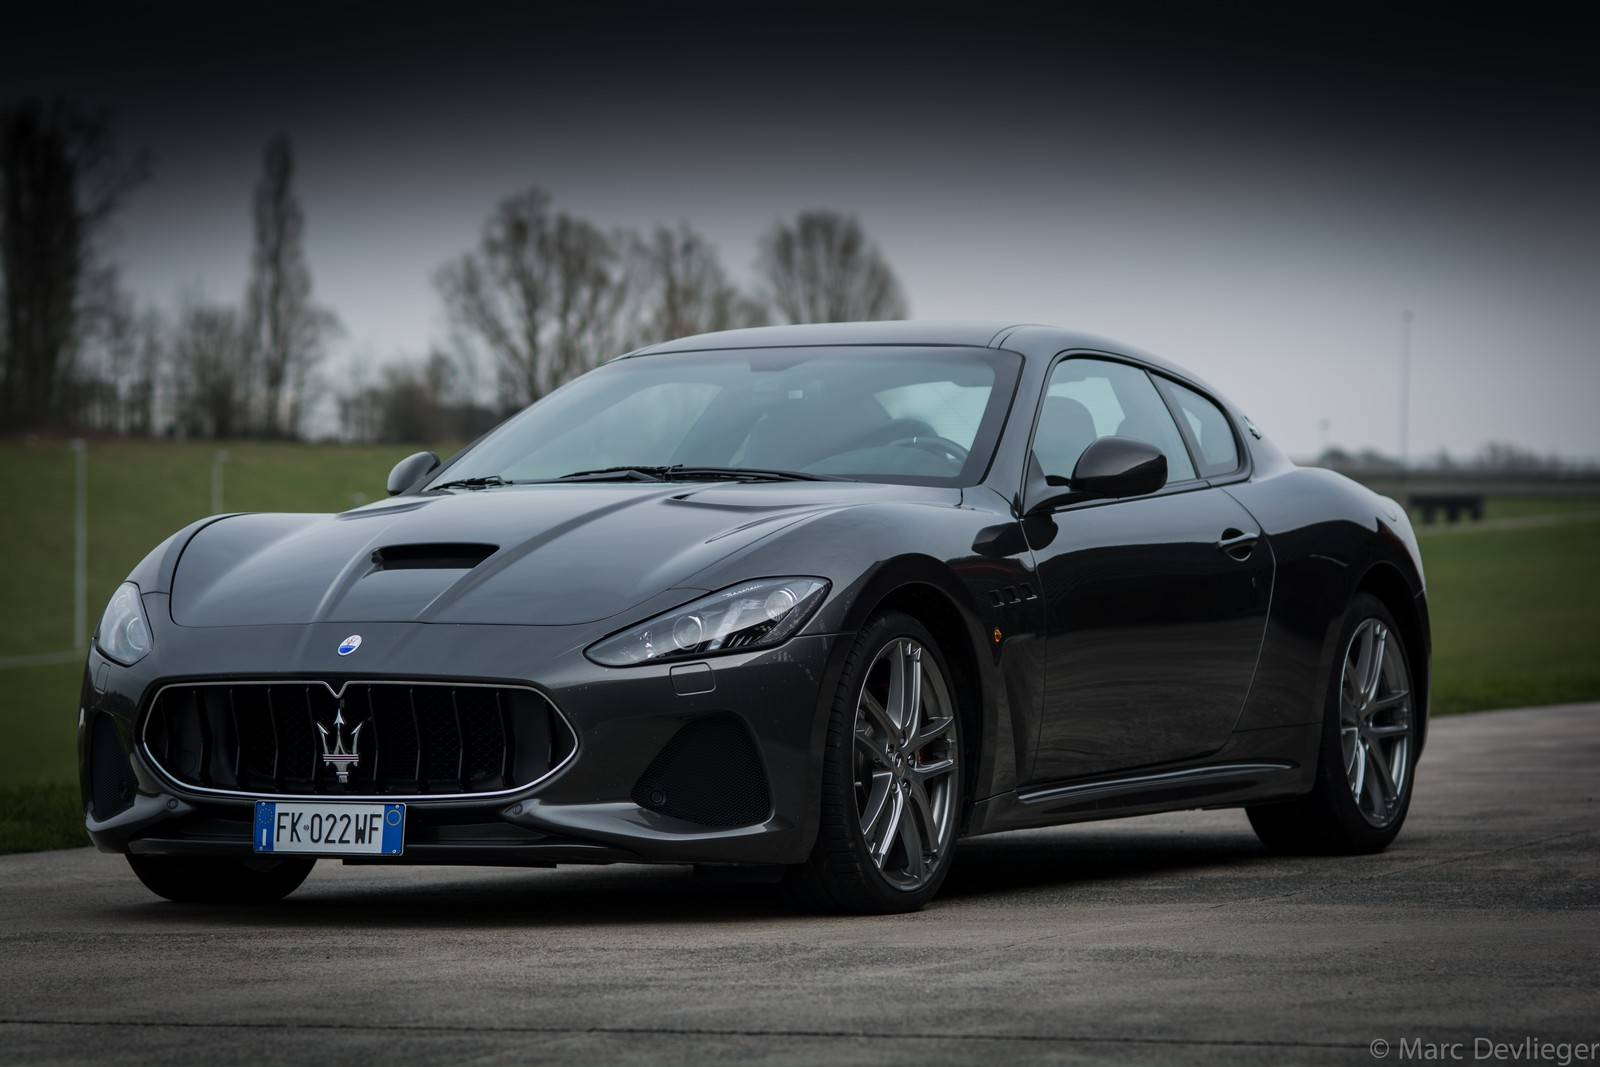 2018 maserati granturismo mc review - gtspirit